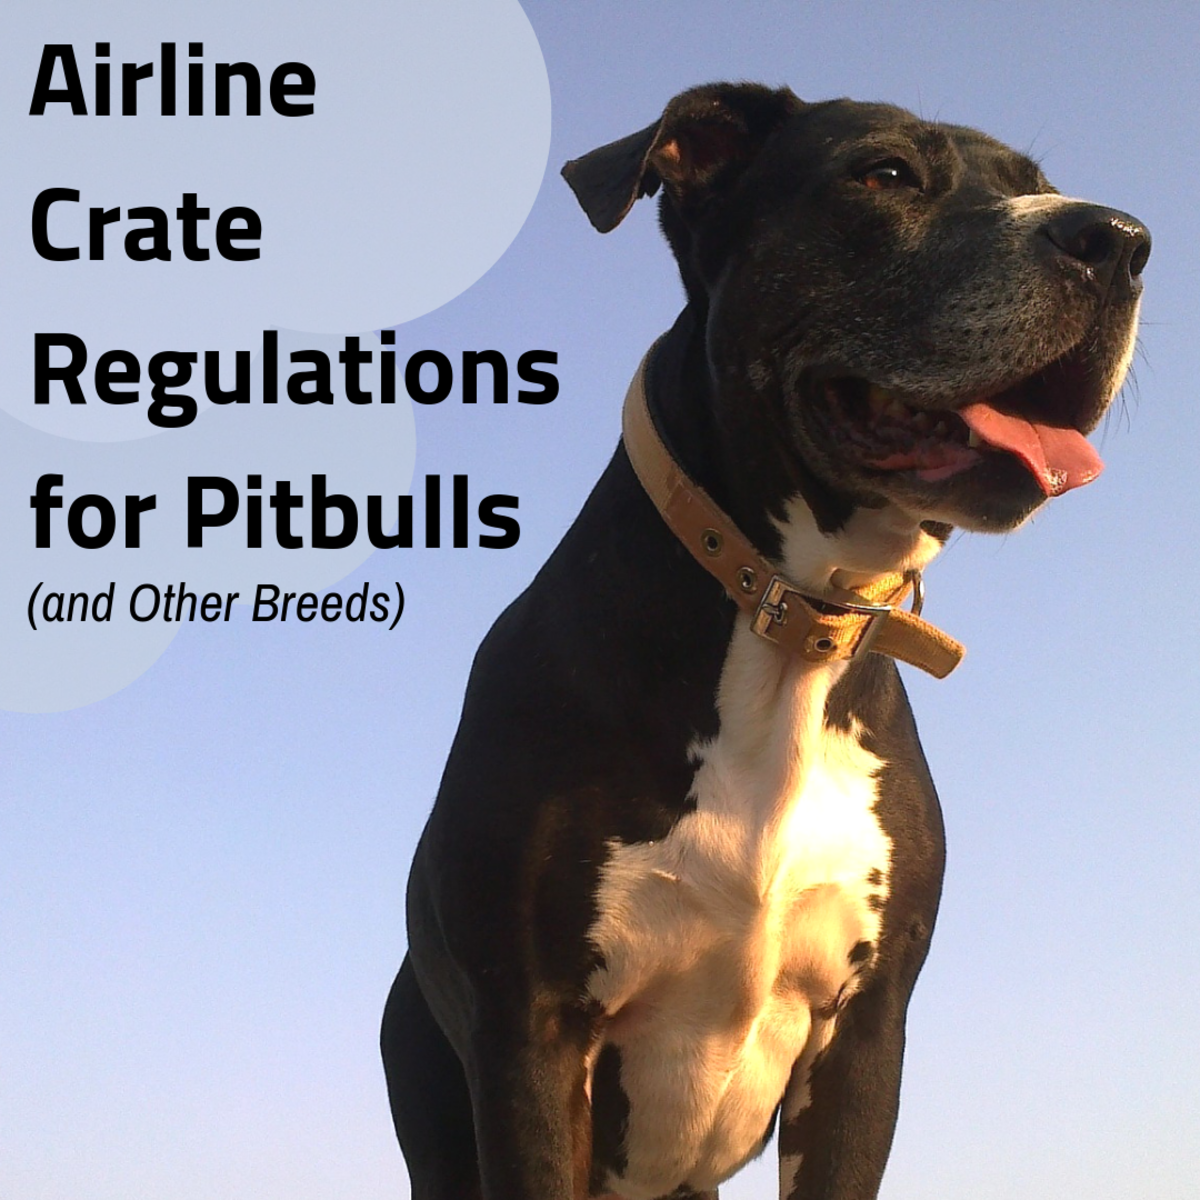 Flying With Your Pitbull? Review the IATA CR 82 Crate Requirements